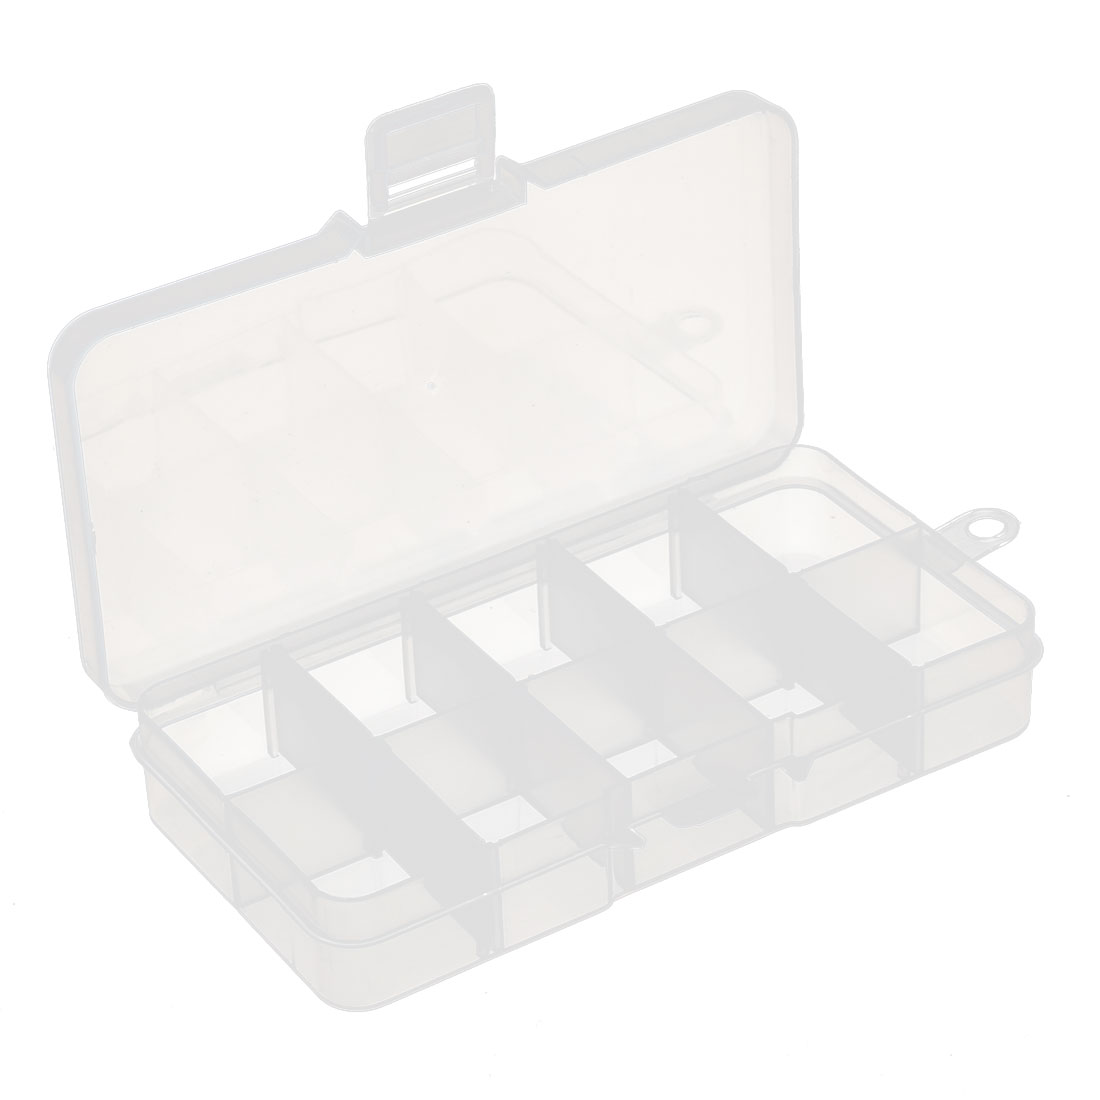 Jewelry Bead Pill Collection Plastic Adjustable Storage Divider Case Box Clear